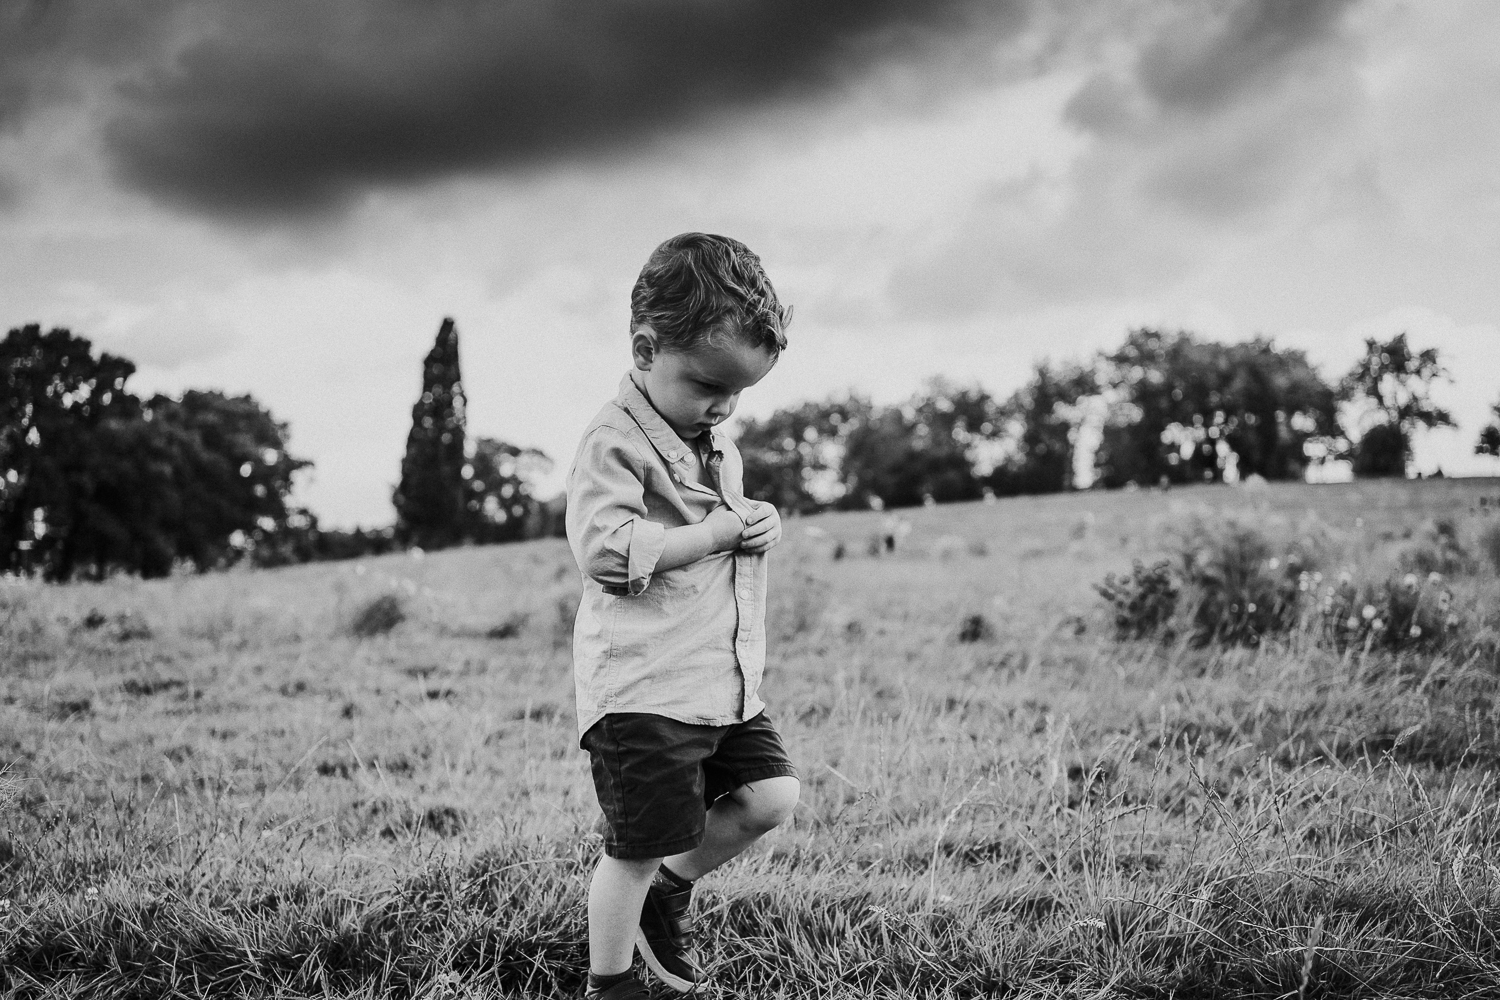 sibling family photography 2020 black and white portrait young boy moody sky